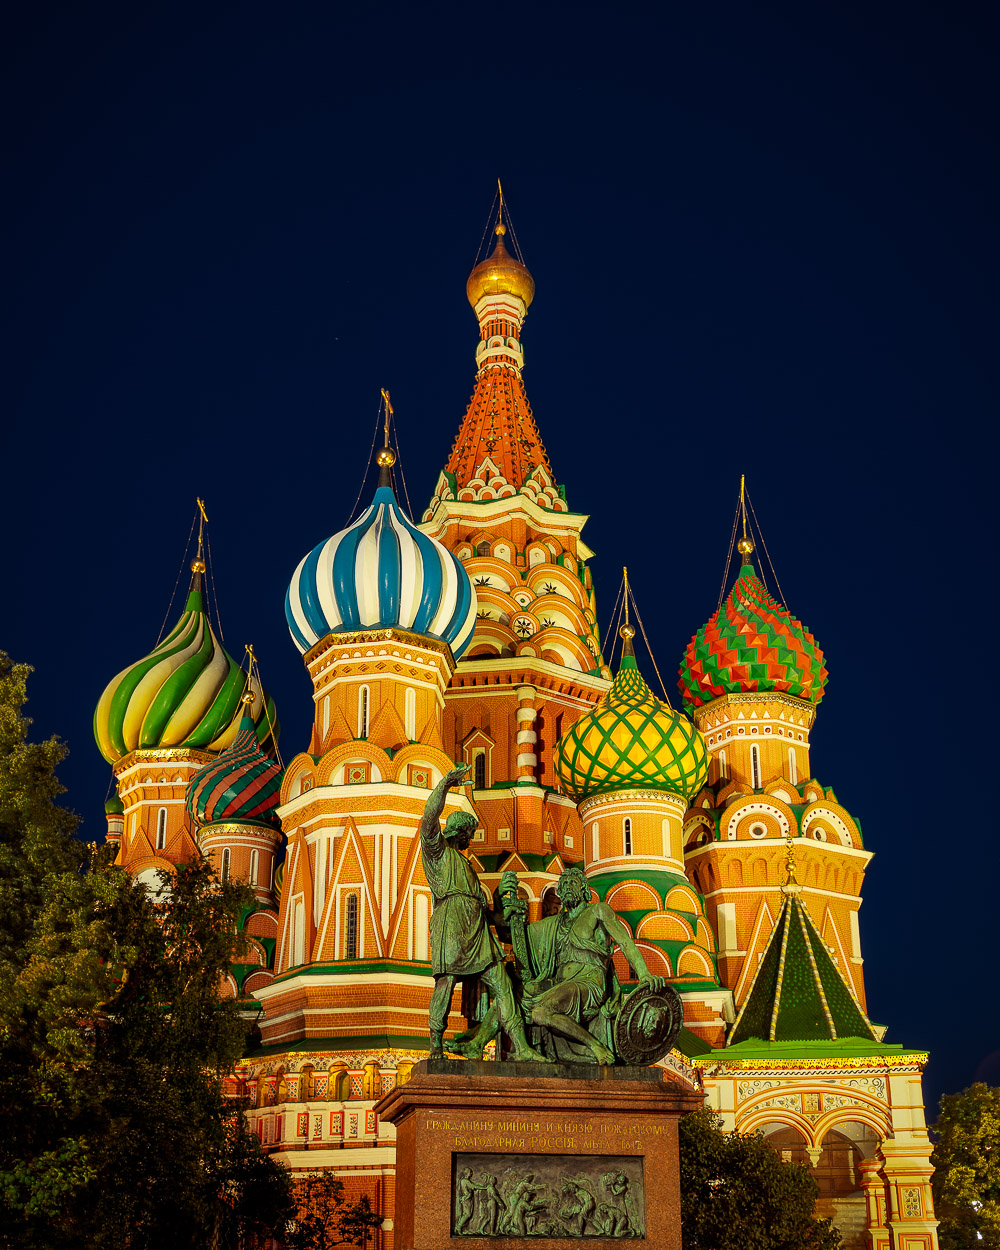 An    exterior view    of the magnificent    St. Basil's Cathedral    in    Red Square, Moscow    at night.